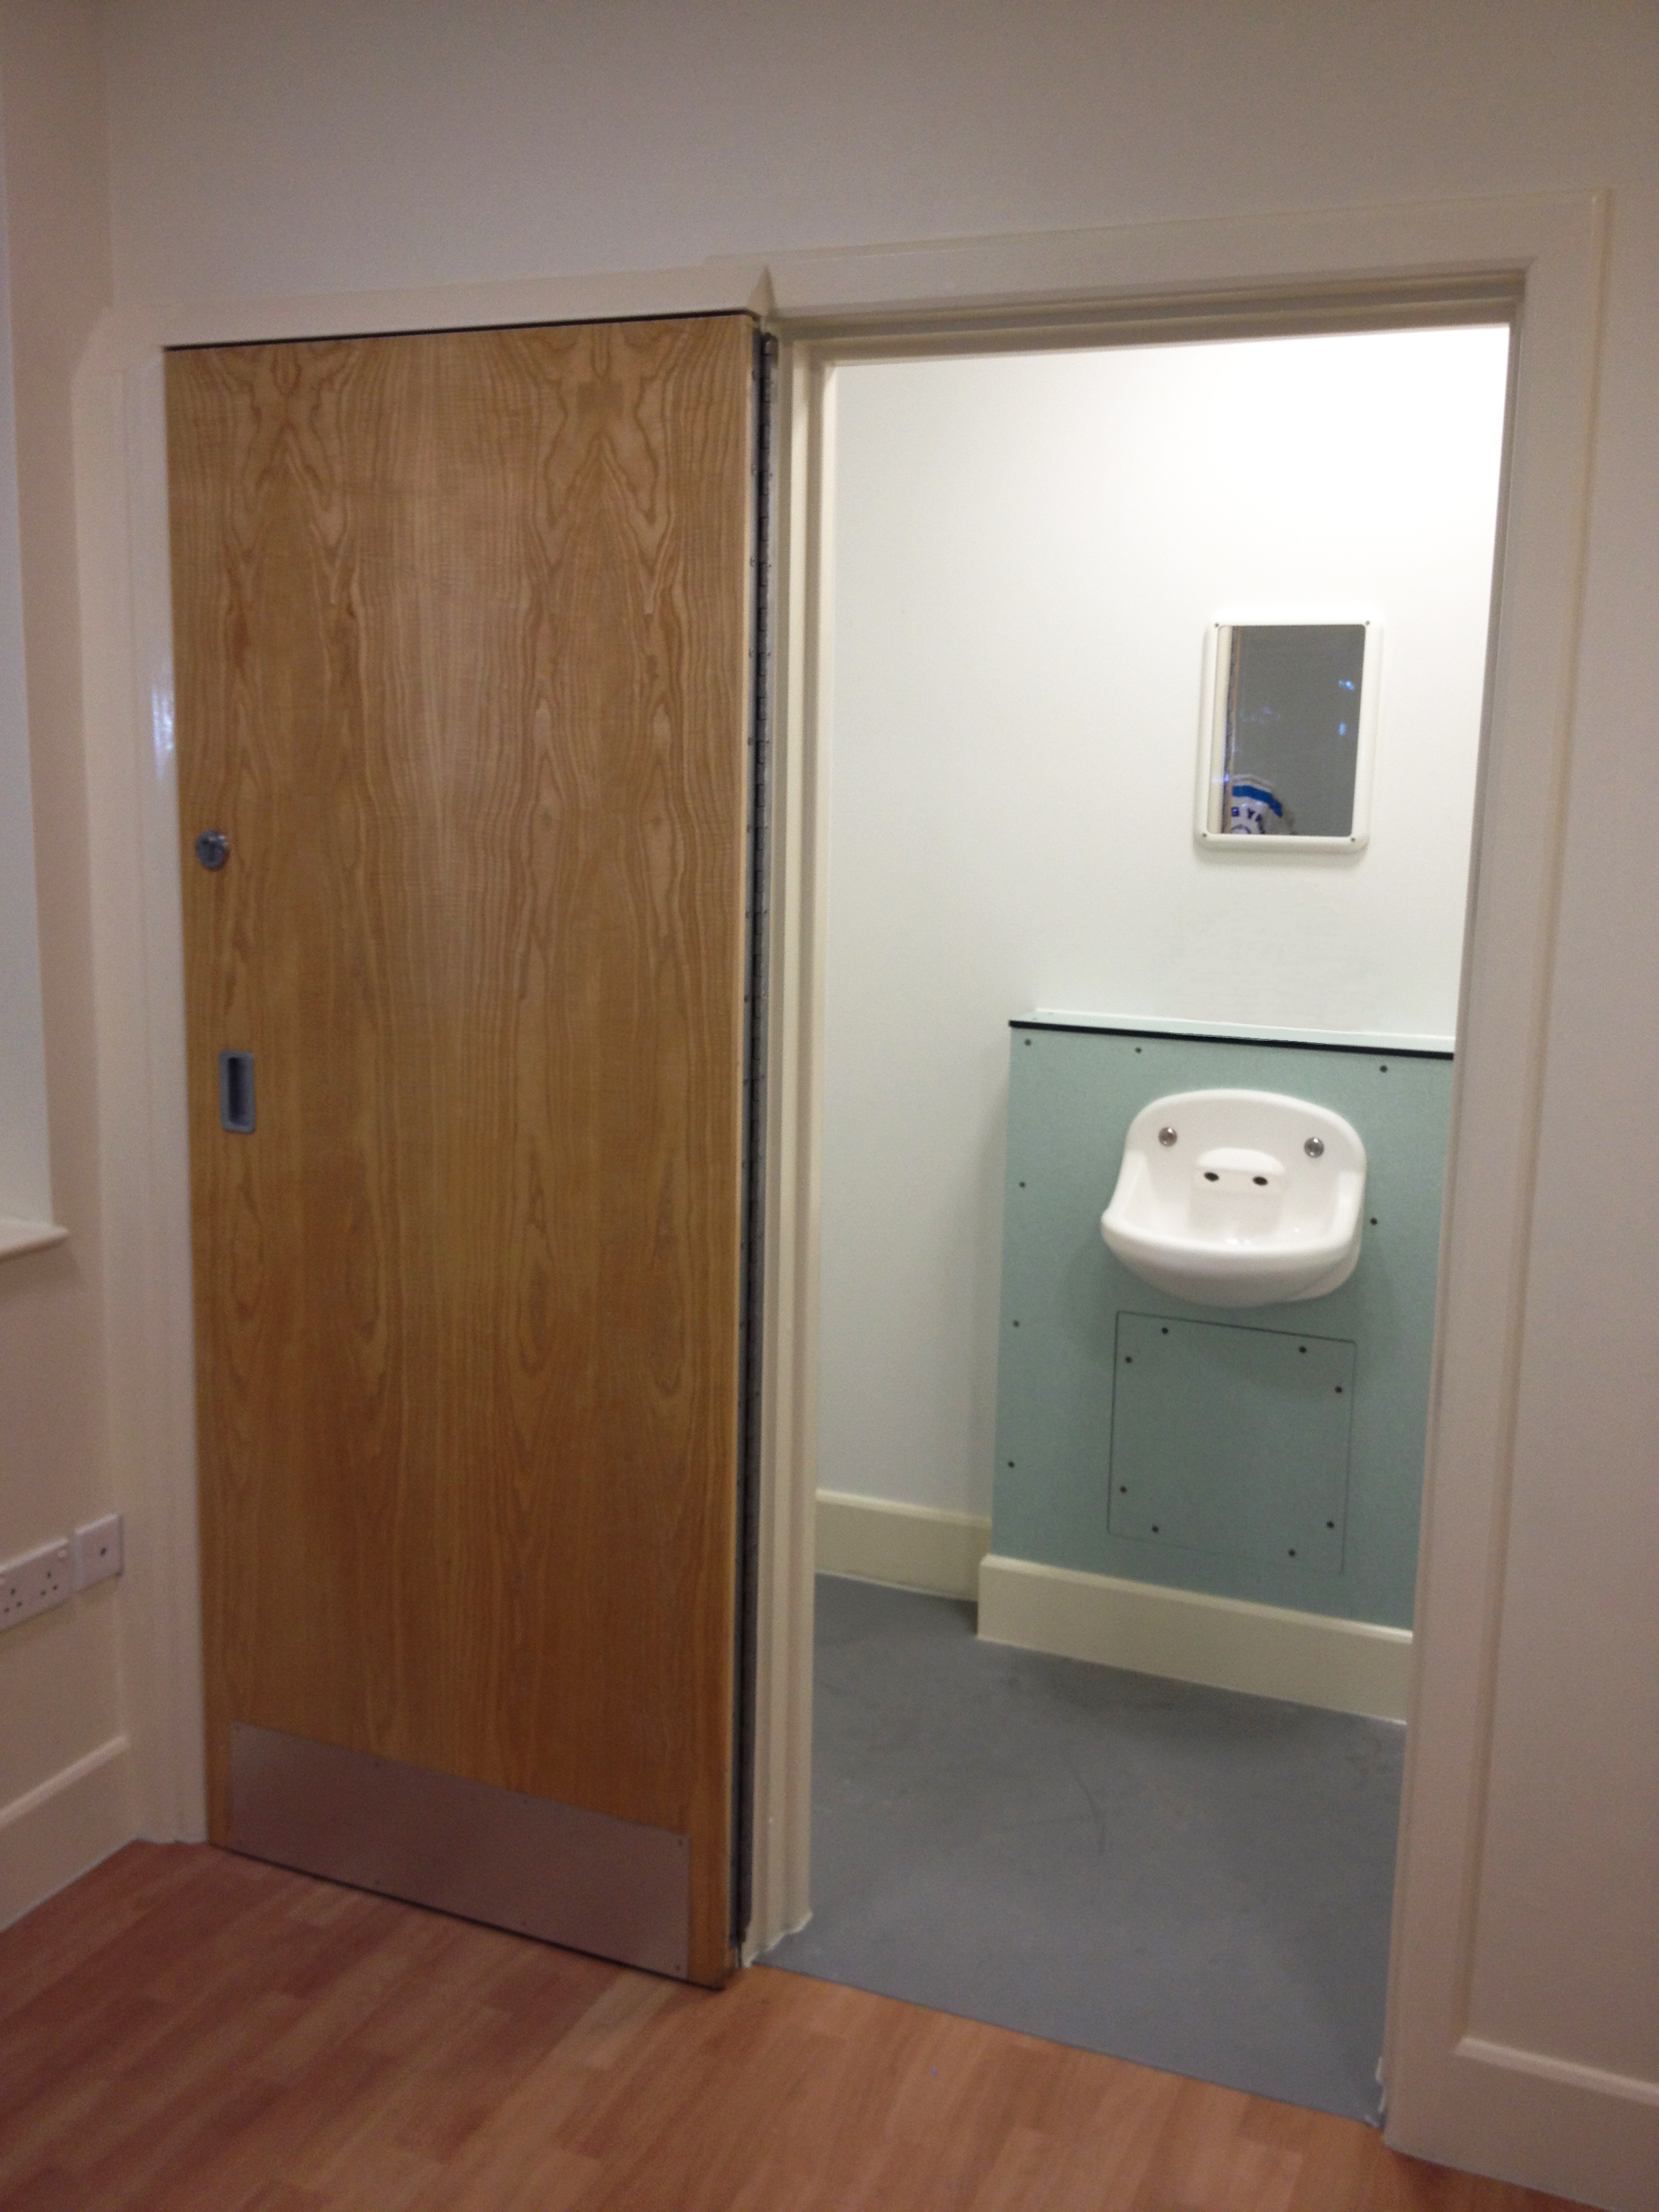 Seclusion Room Doors Cell Doors Multipoint Locking